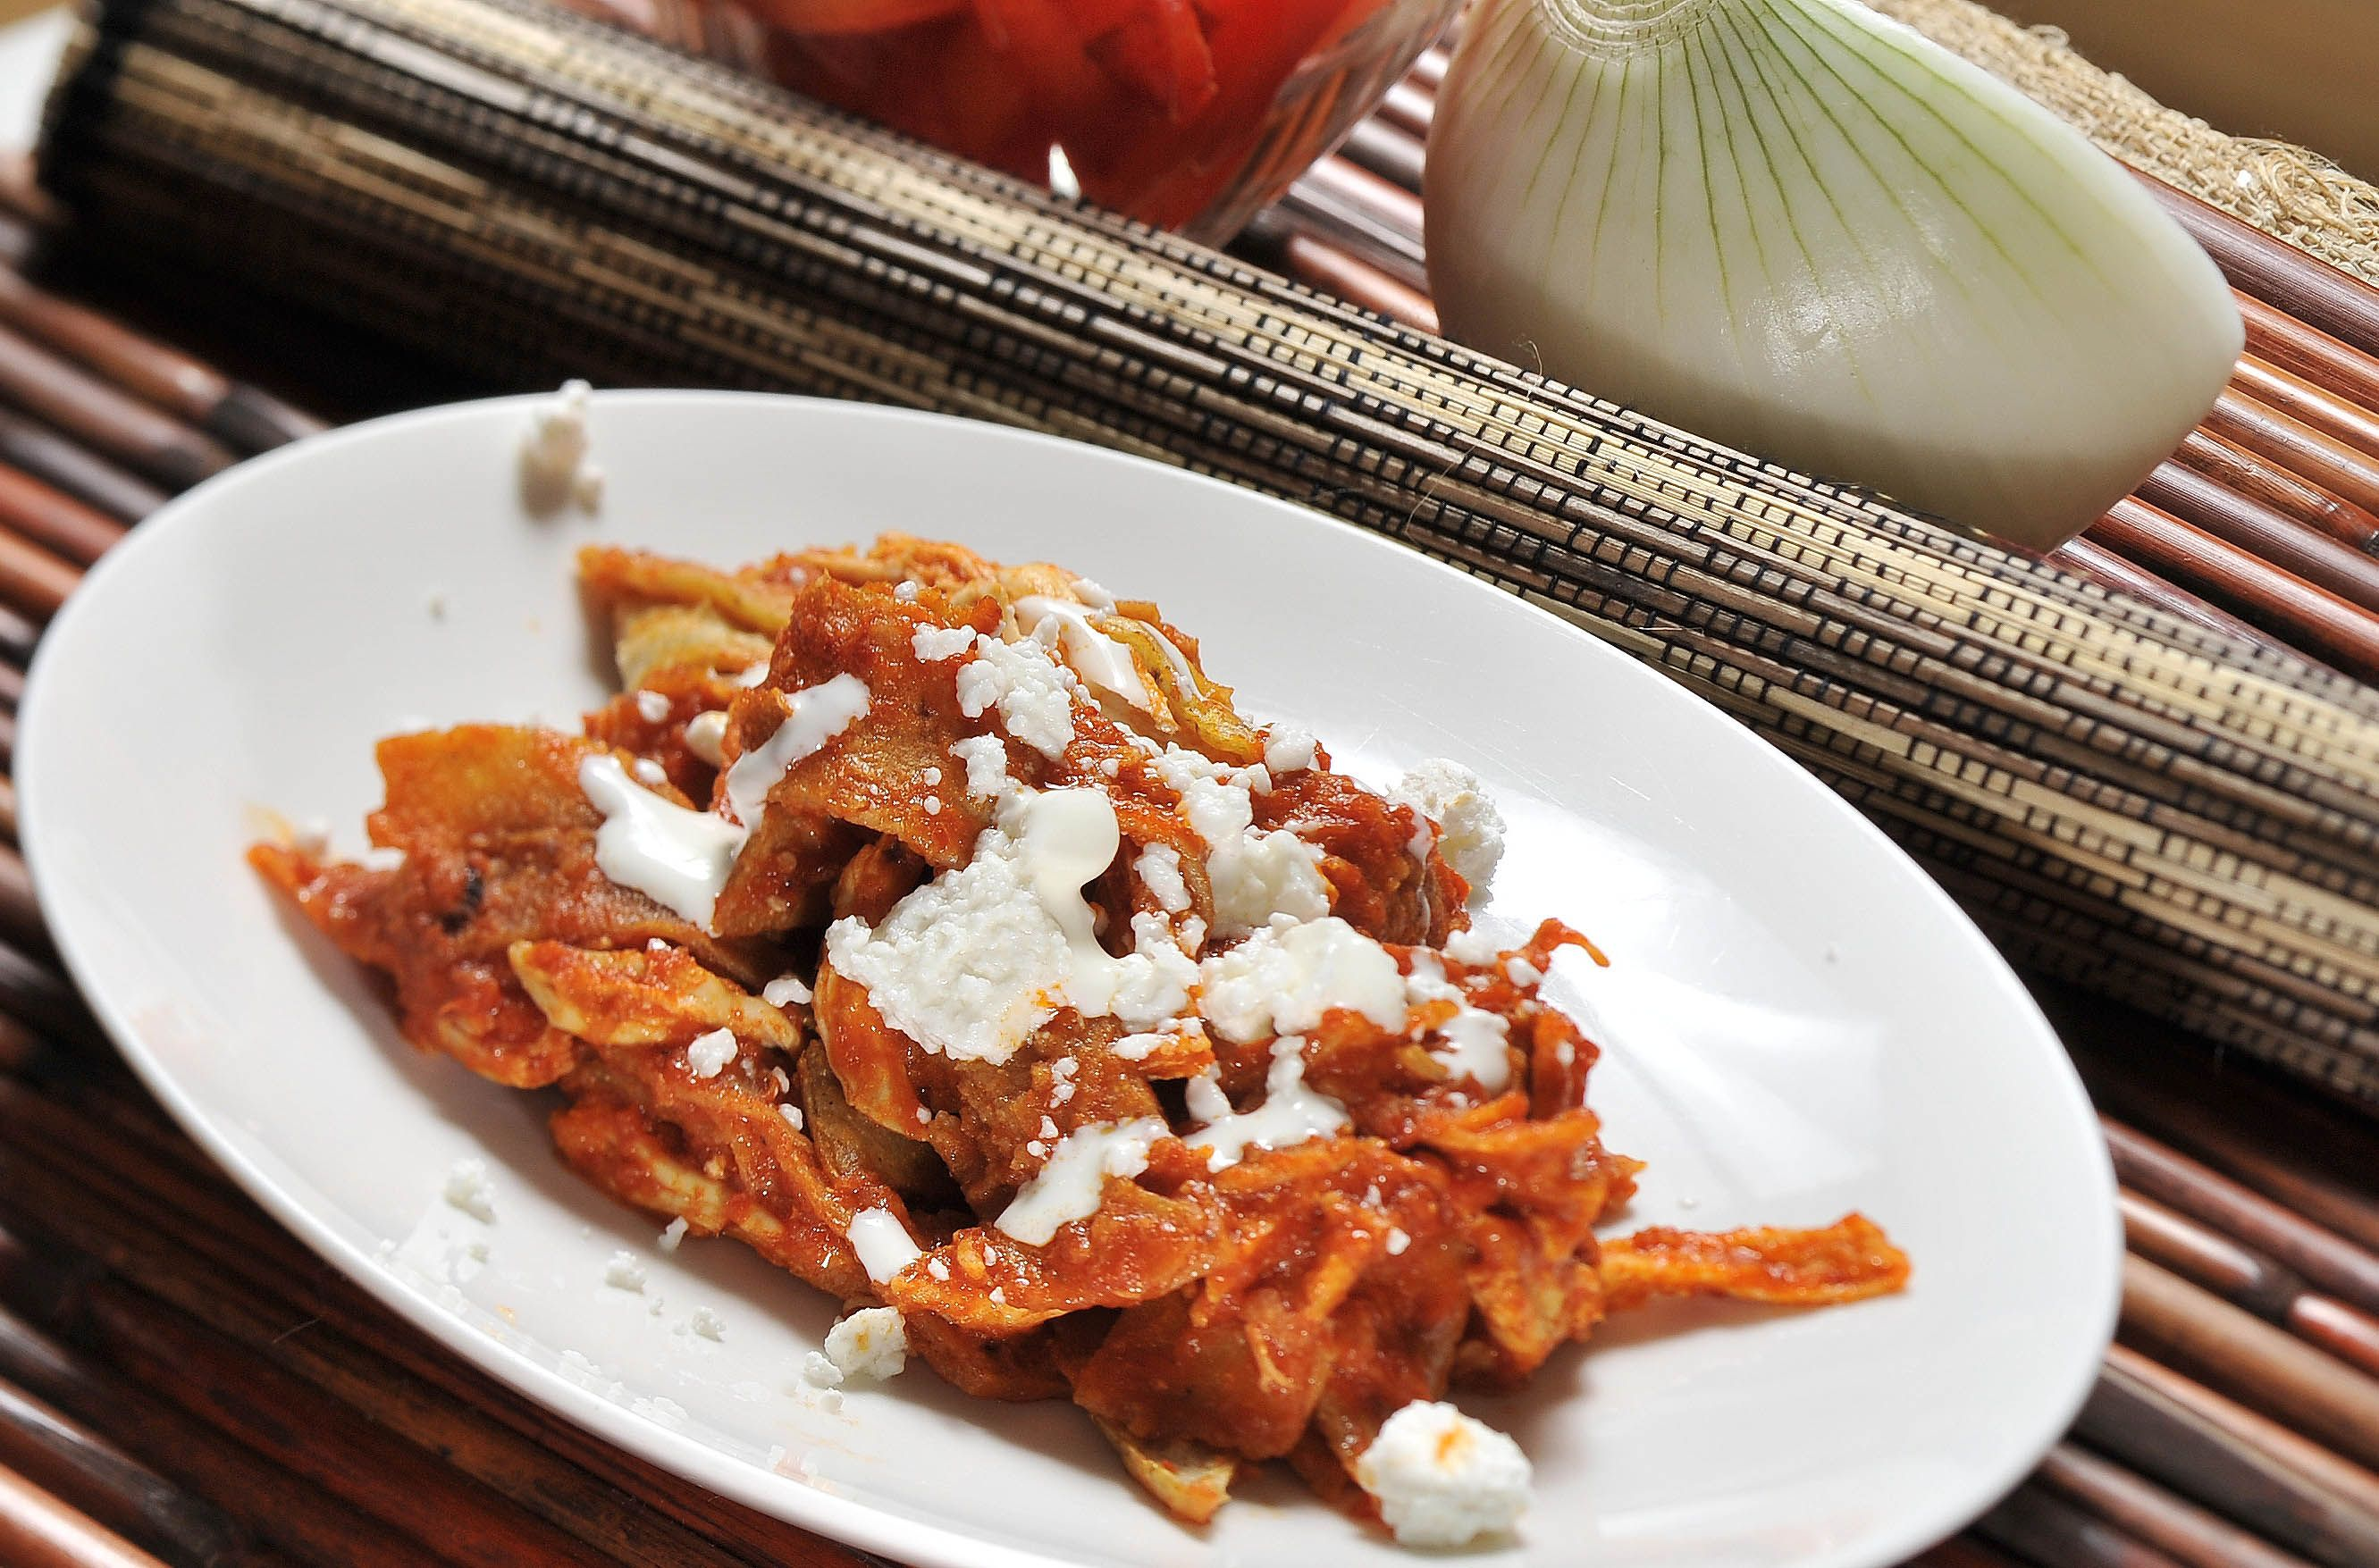 1 clove of garlic 2 pieces of chile guajillo 2 pieces of tomato 12 pieces of corn tortilla Canola oil salt 1/4 piece of white onion 100 grams of fresh cheese 1 cup shredded cooked chicken 1/2 cup cream of cow's milk 1 piece of chile de arbol